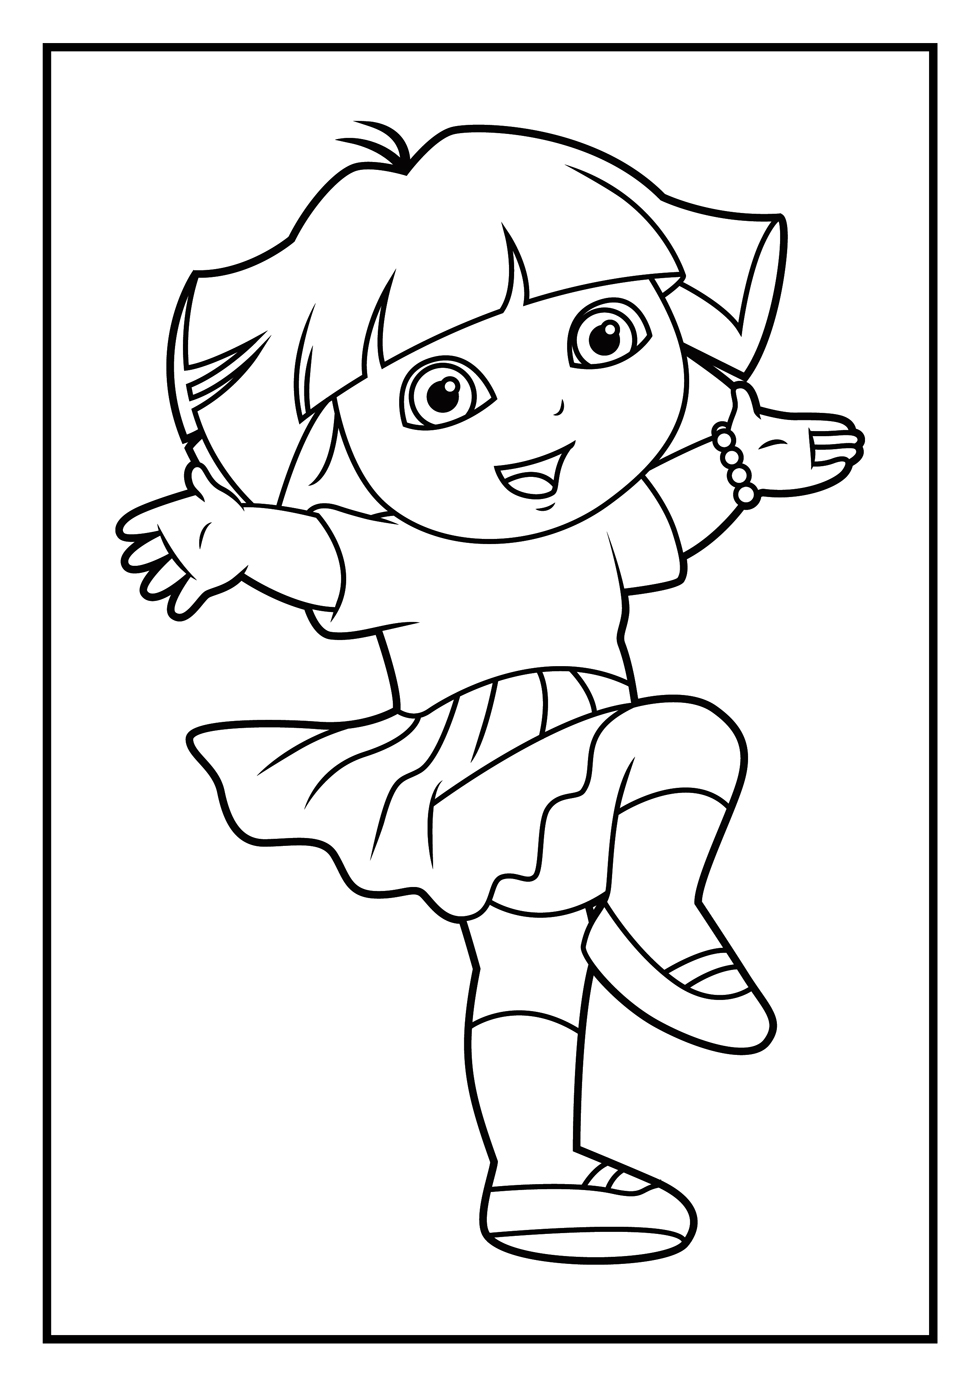 coloring picture of dora coloring pages dora coloring pages dora the explorer dora picture coloring of